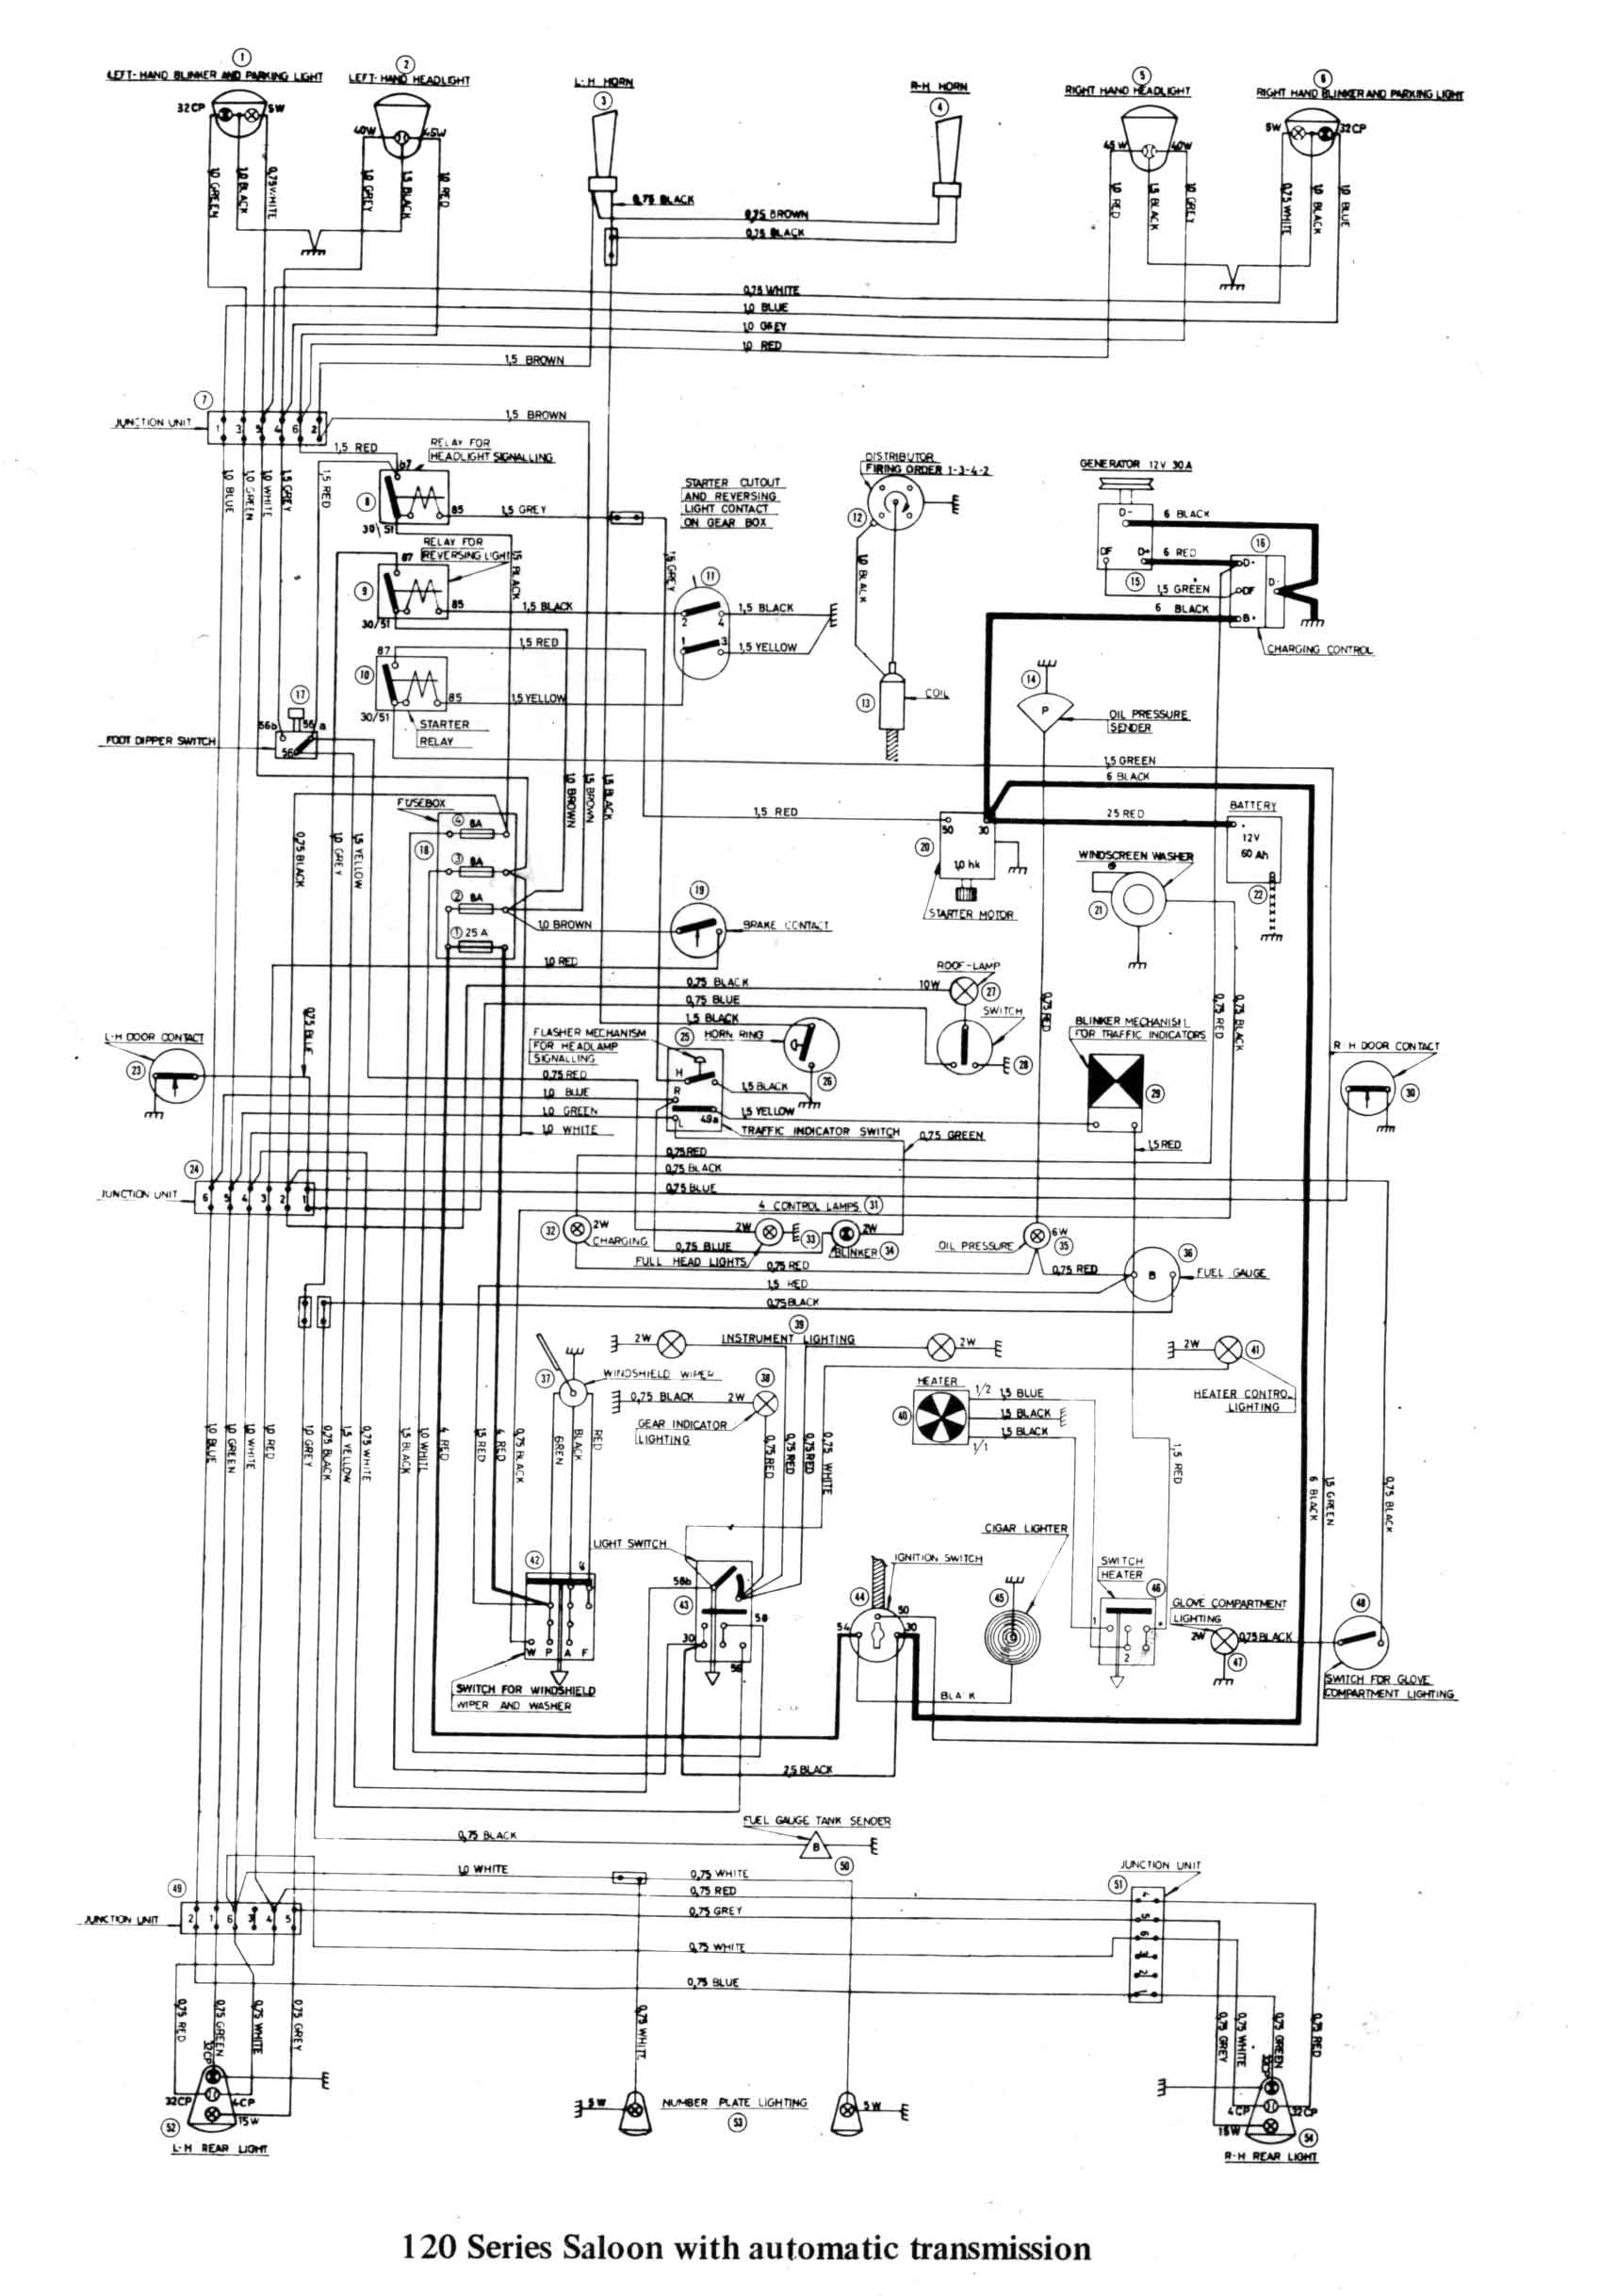 volvo wiring diagrams image details